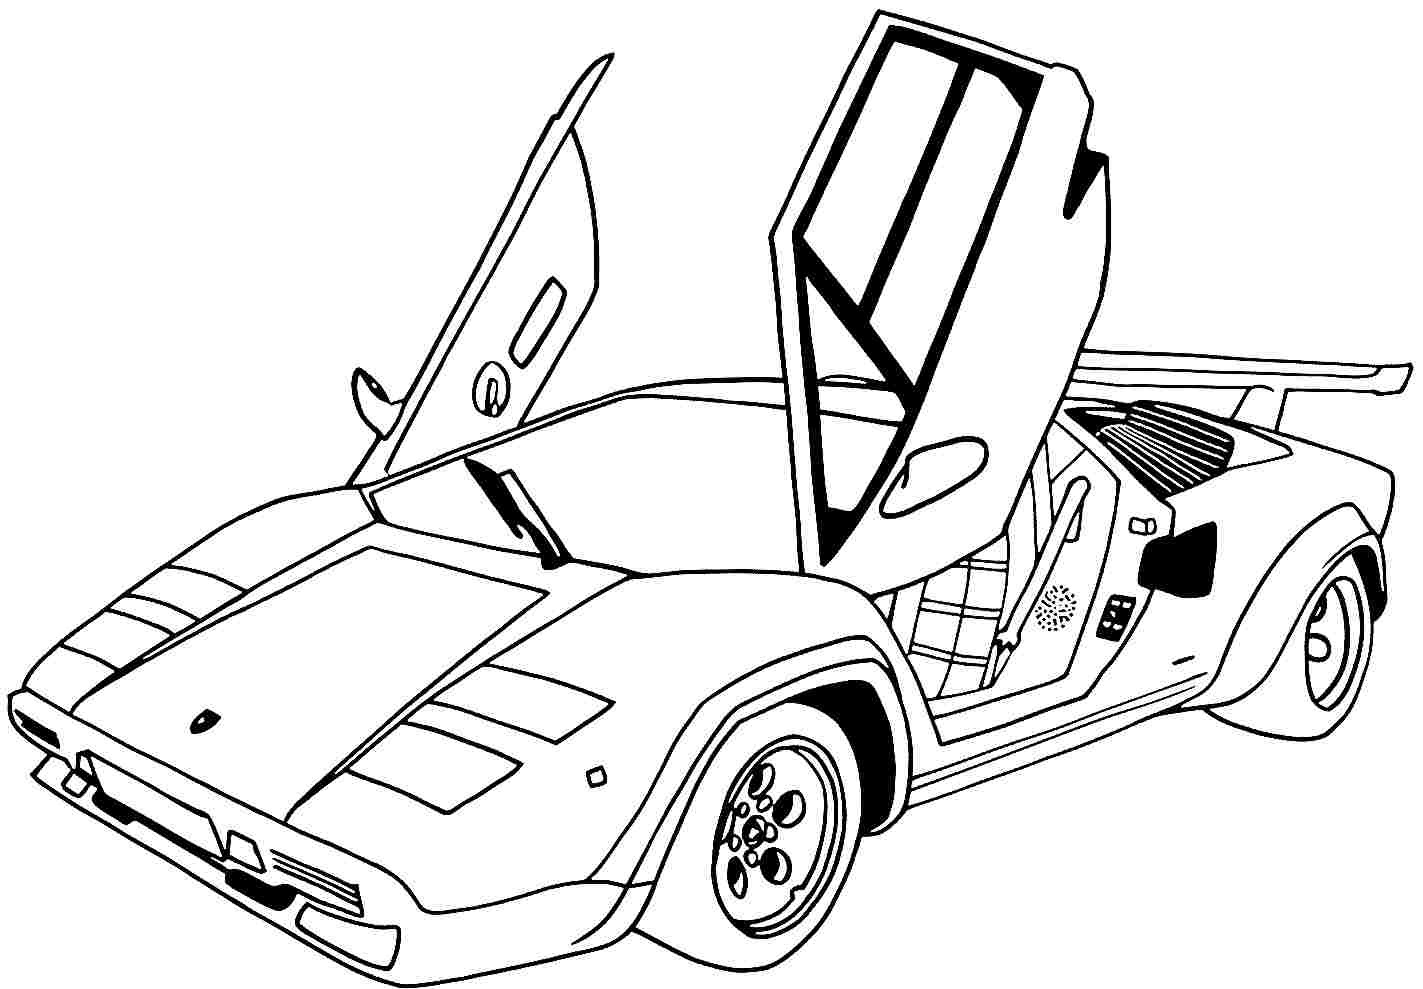 Coloring Pages Sports Cars to Print 5l - Free Download